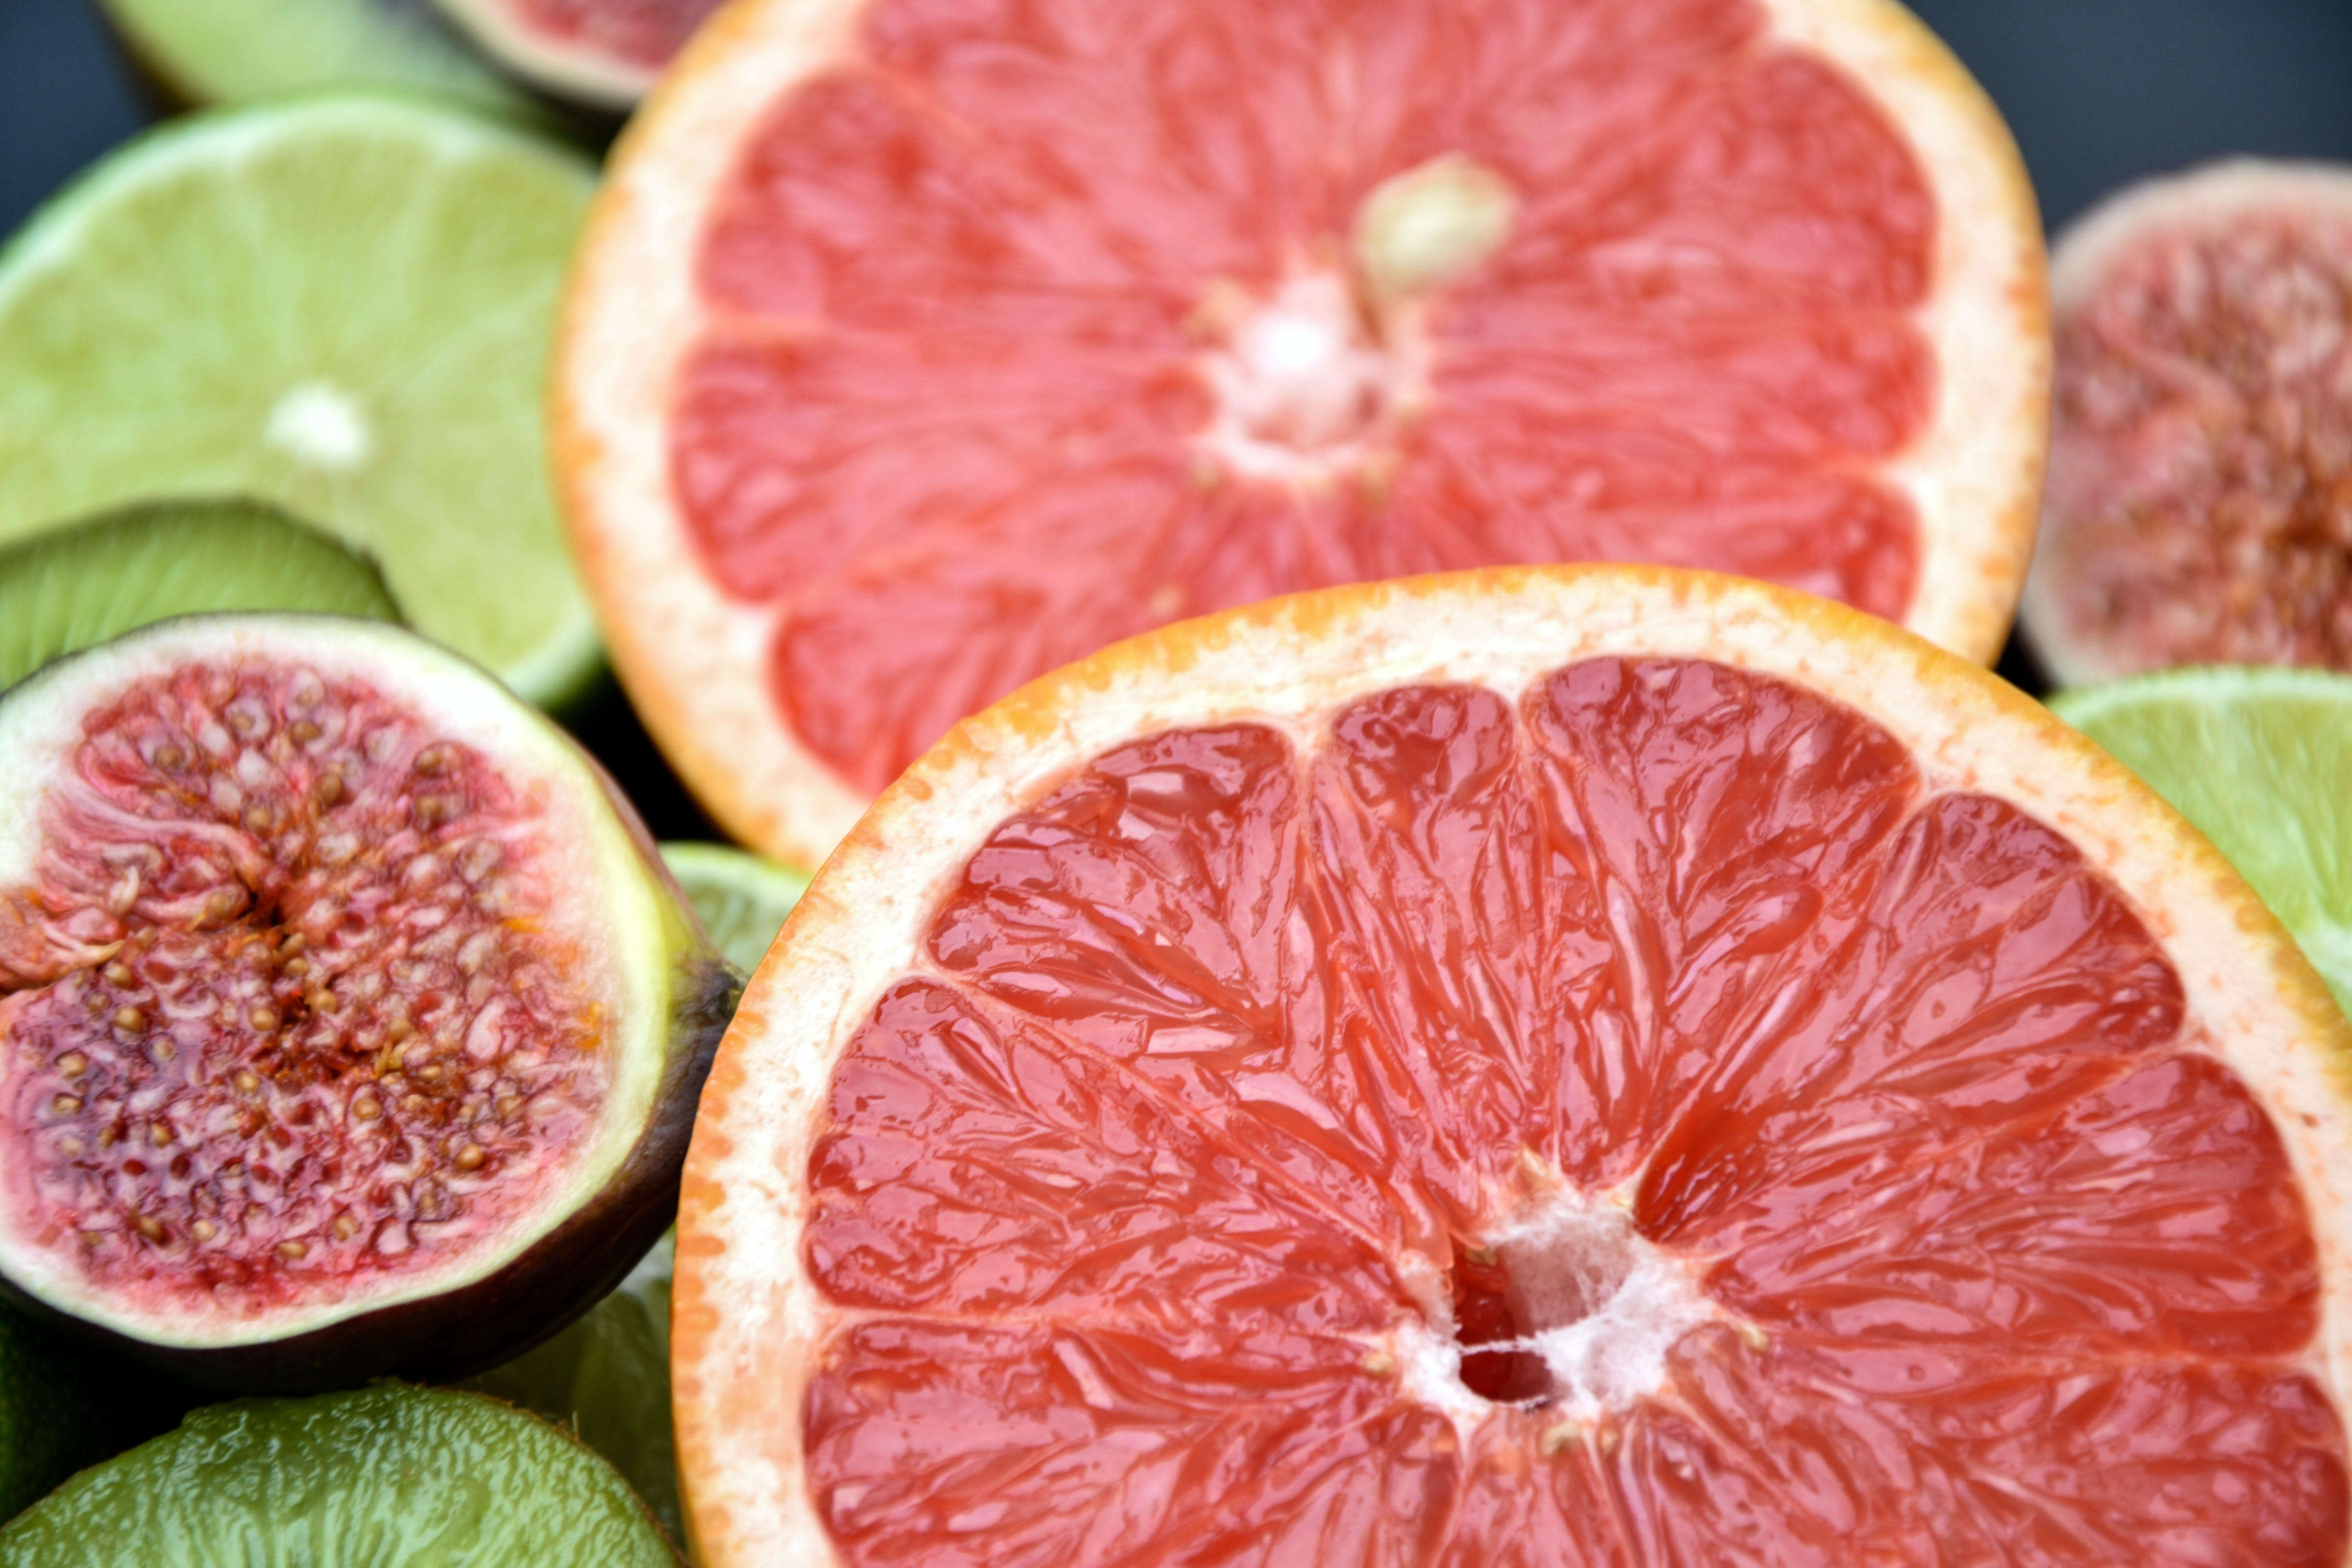 Close-up Photo of Grapefruits, Fig, and Limes